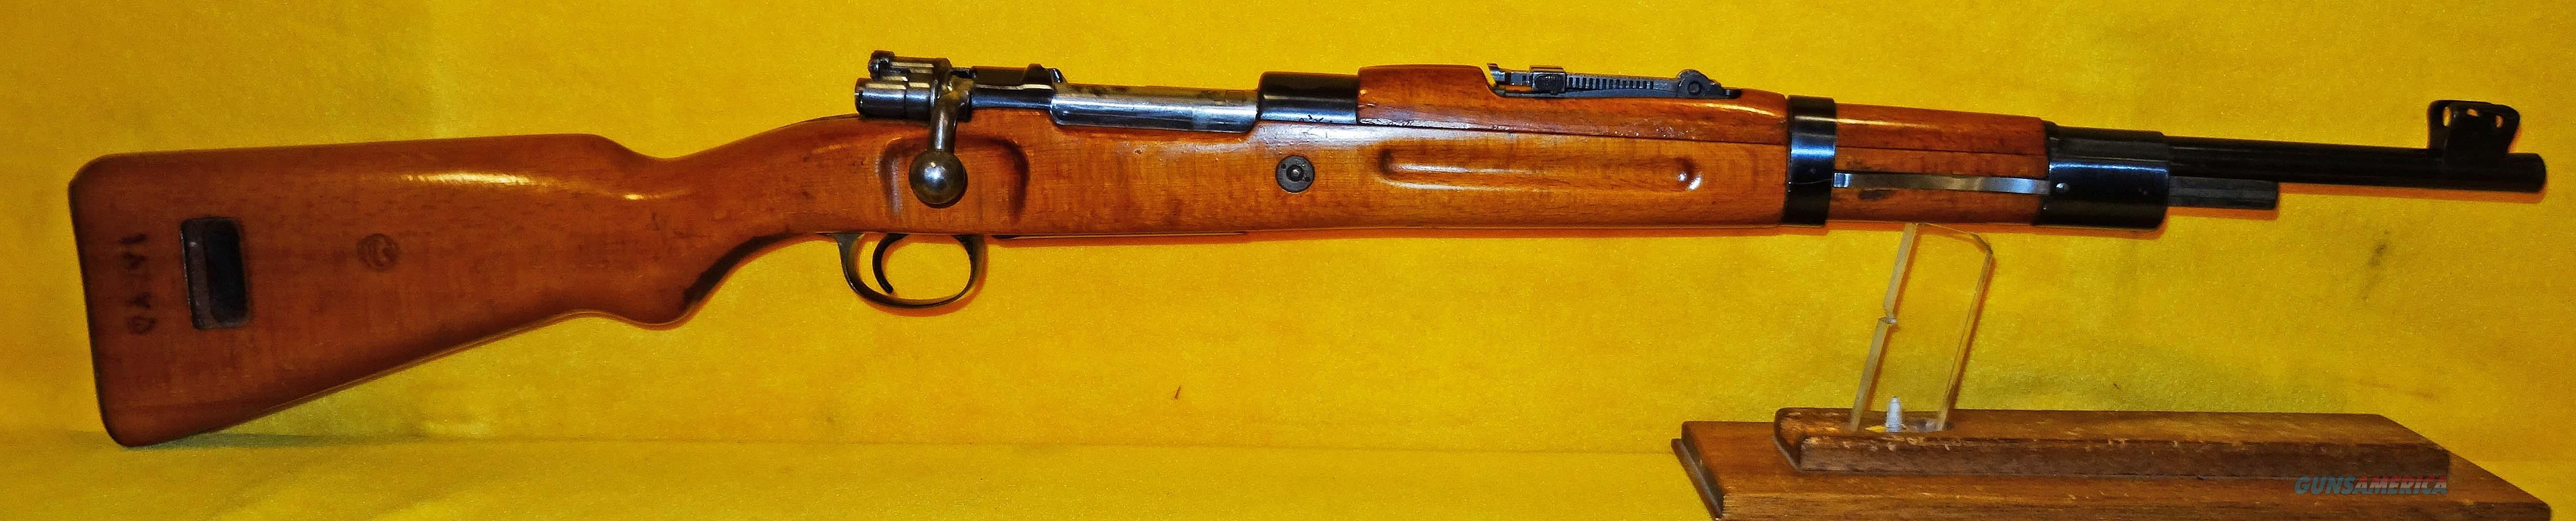 PERSIAN MAUSER IRANIAN CONTRACT MODEL 49  Guns > Rifles > Military Misc. Rifles Non-US > Other